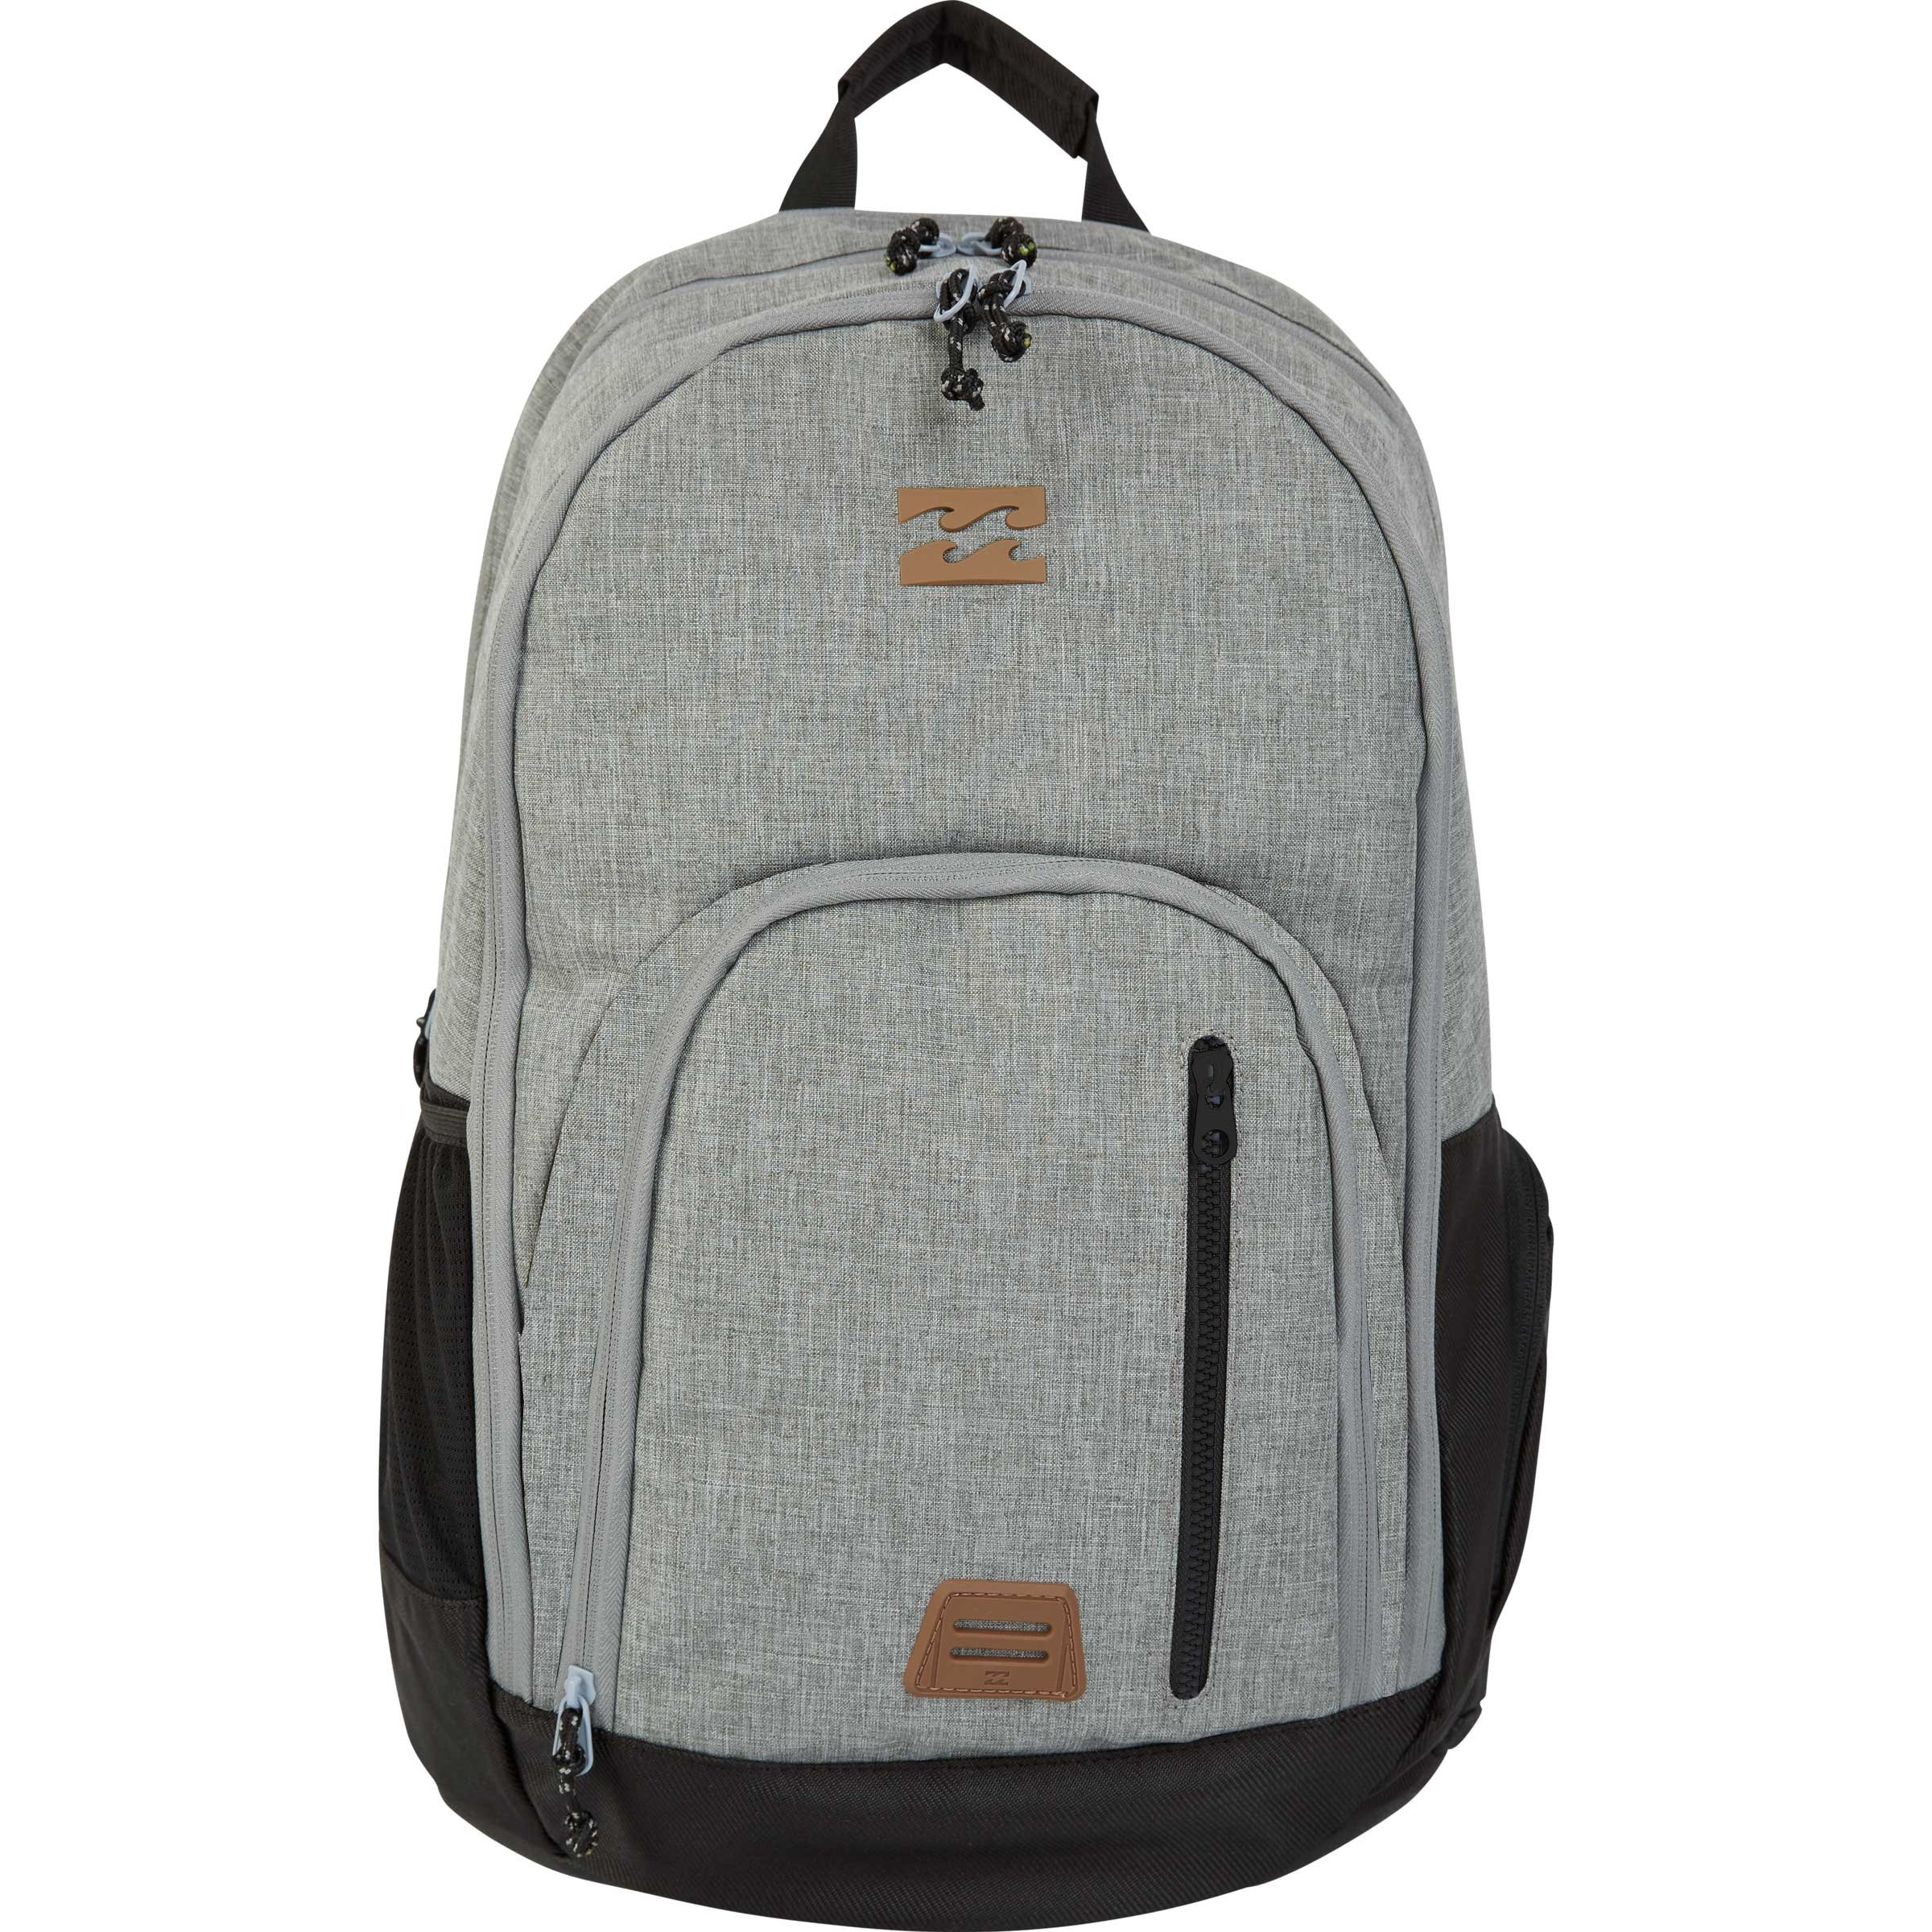 Billabong Men's Classic School Backpack, Grey Heather, ONE